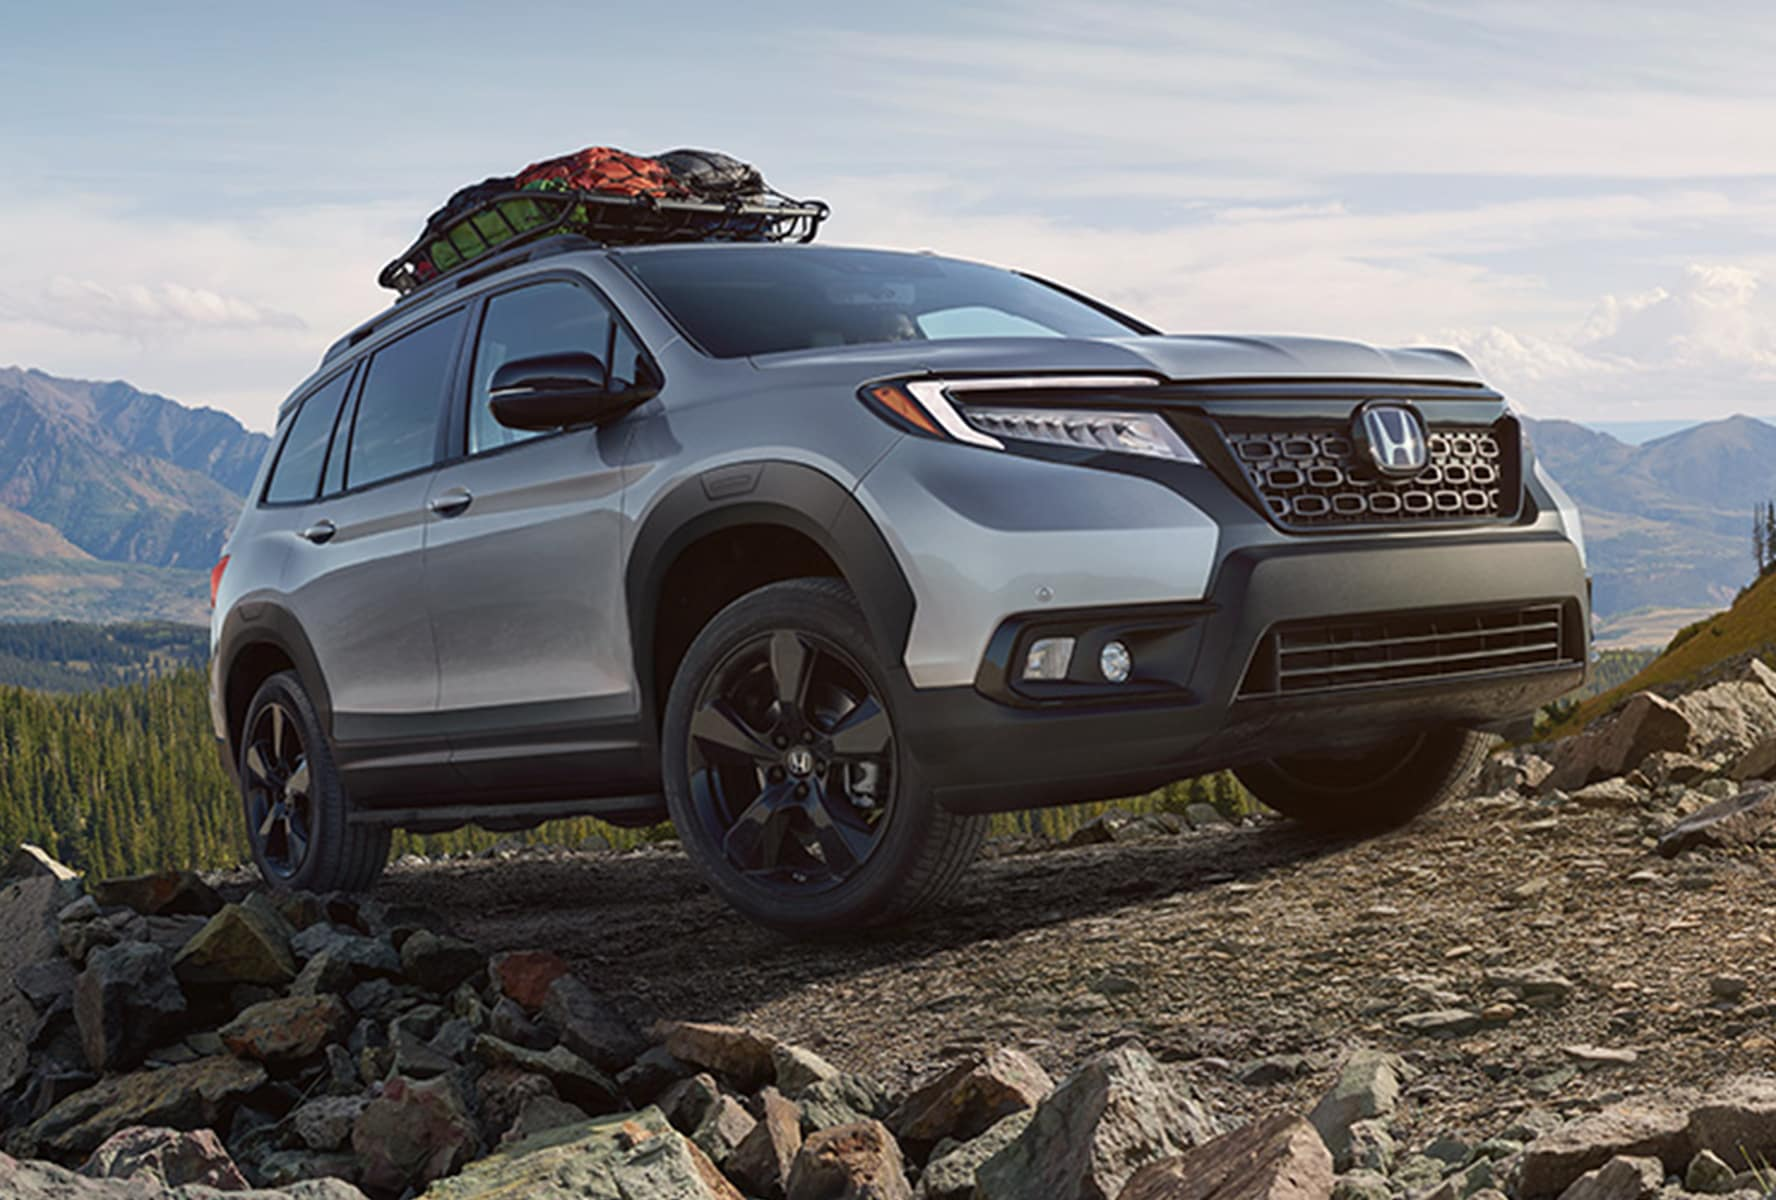 2019 Honda Passport performance near Lincolnwood, IL